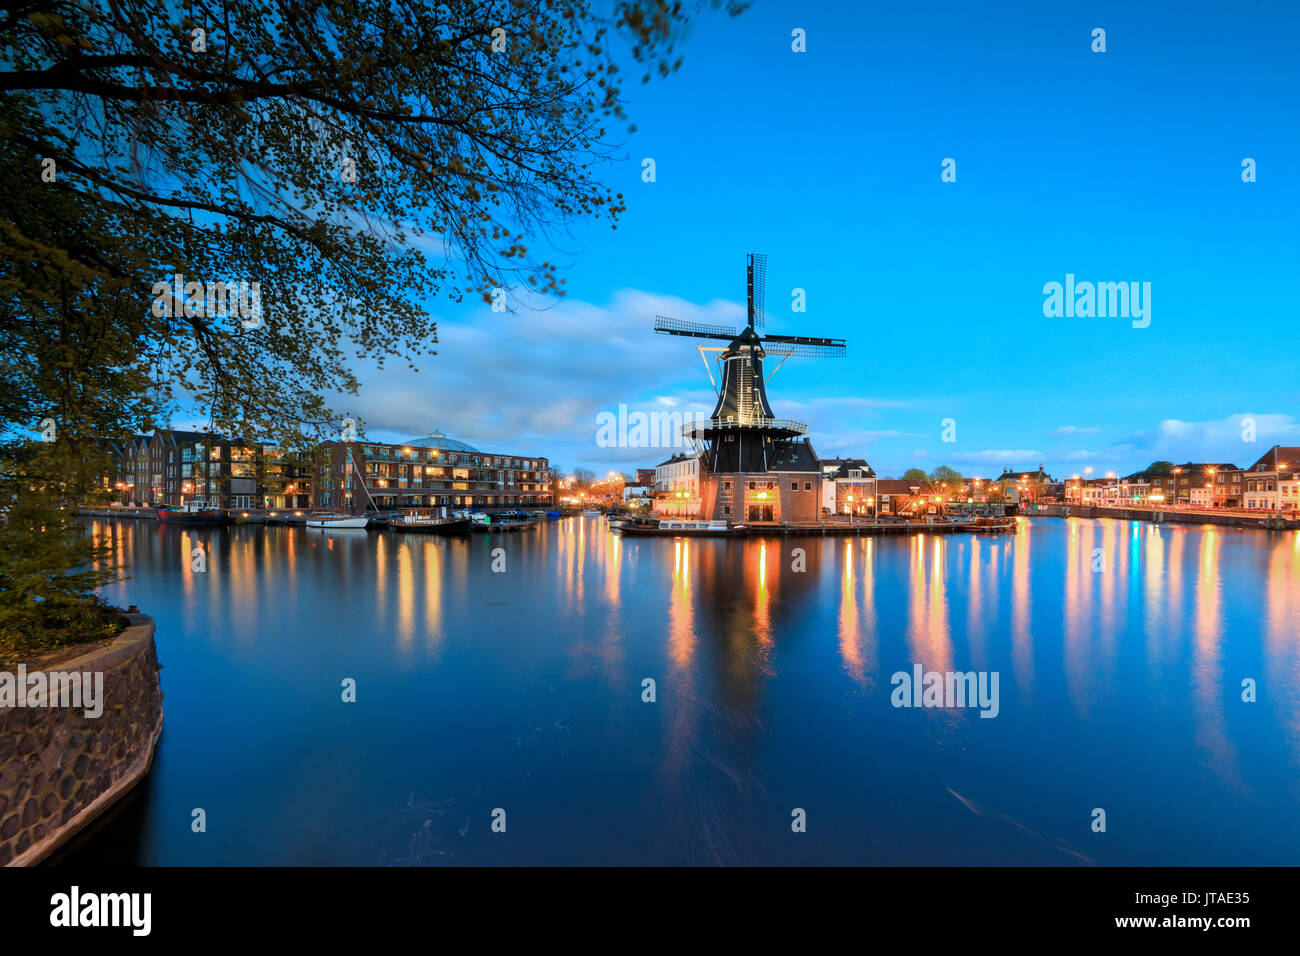 Dusk lights on the Windmill De Adriaan reflected in the River Spaarne, Haarlem, North Holland, The Netherlands, Europe - Stock Image